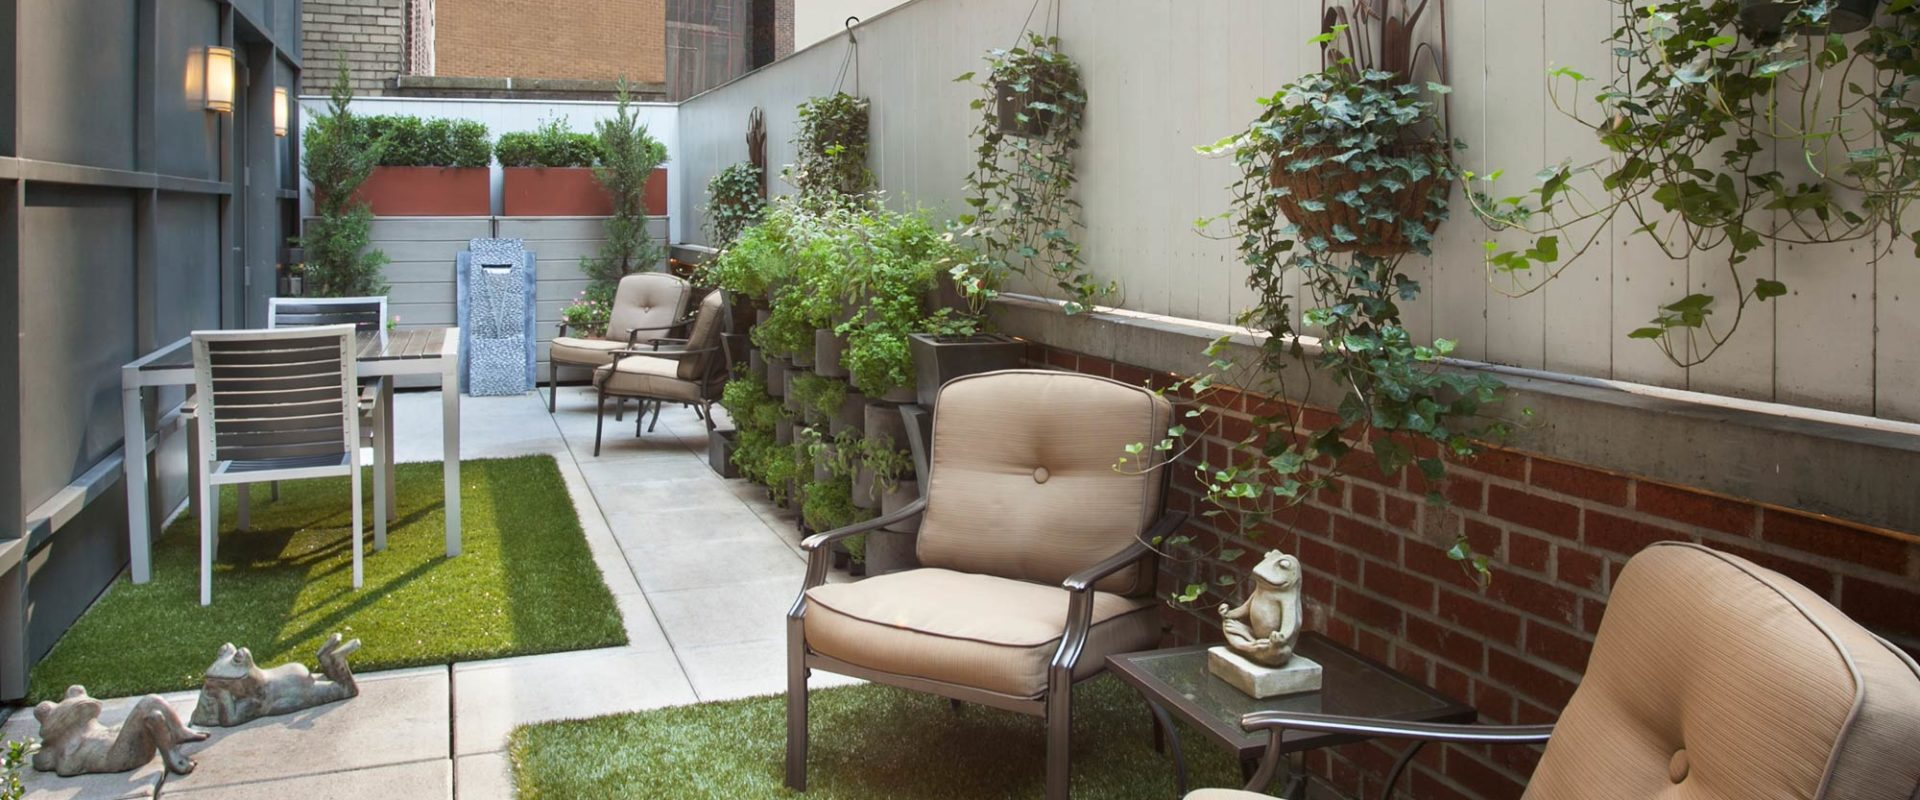 An enclosed outdoor city terrace with patio stones, a table and two chairs on green grass